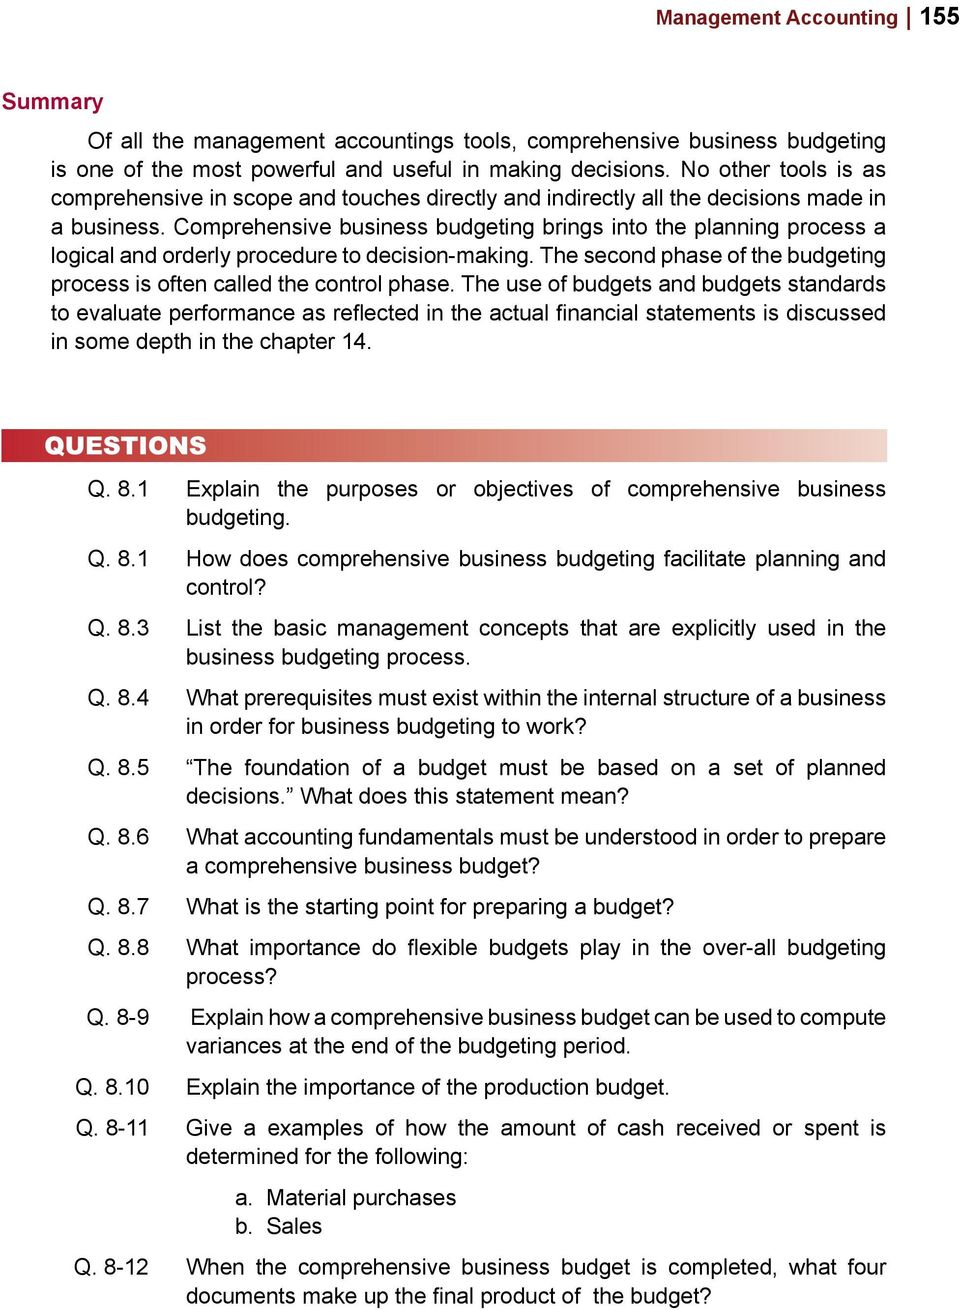 Comprehensive business budgeting brings into the planning process a logical and orderly procedure to decision-making. The second phase of the budgeting process is often called the control phase.